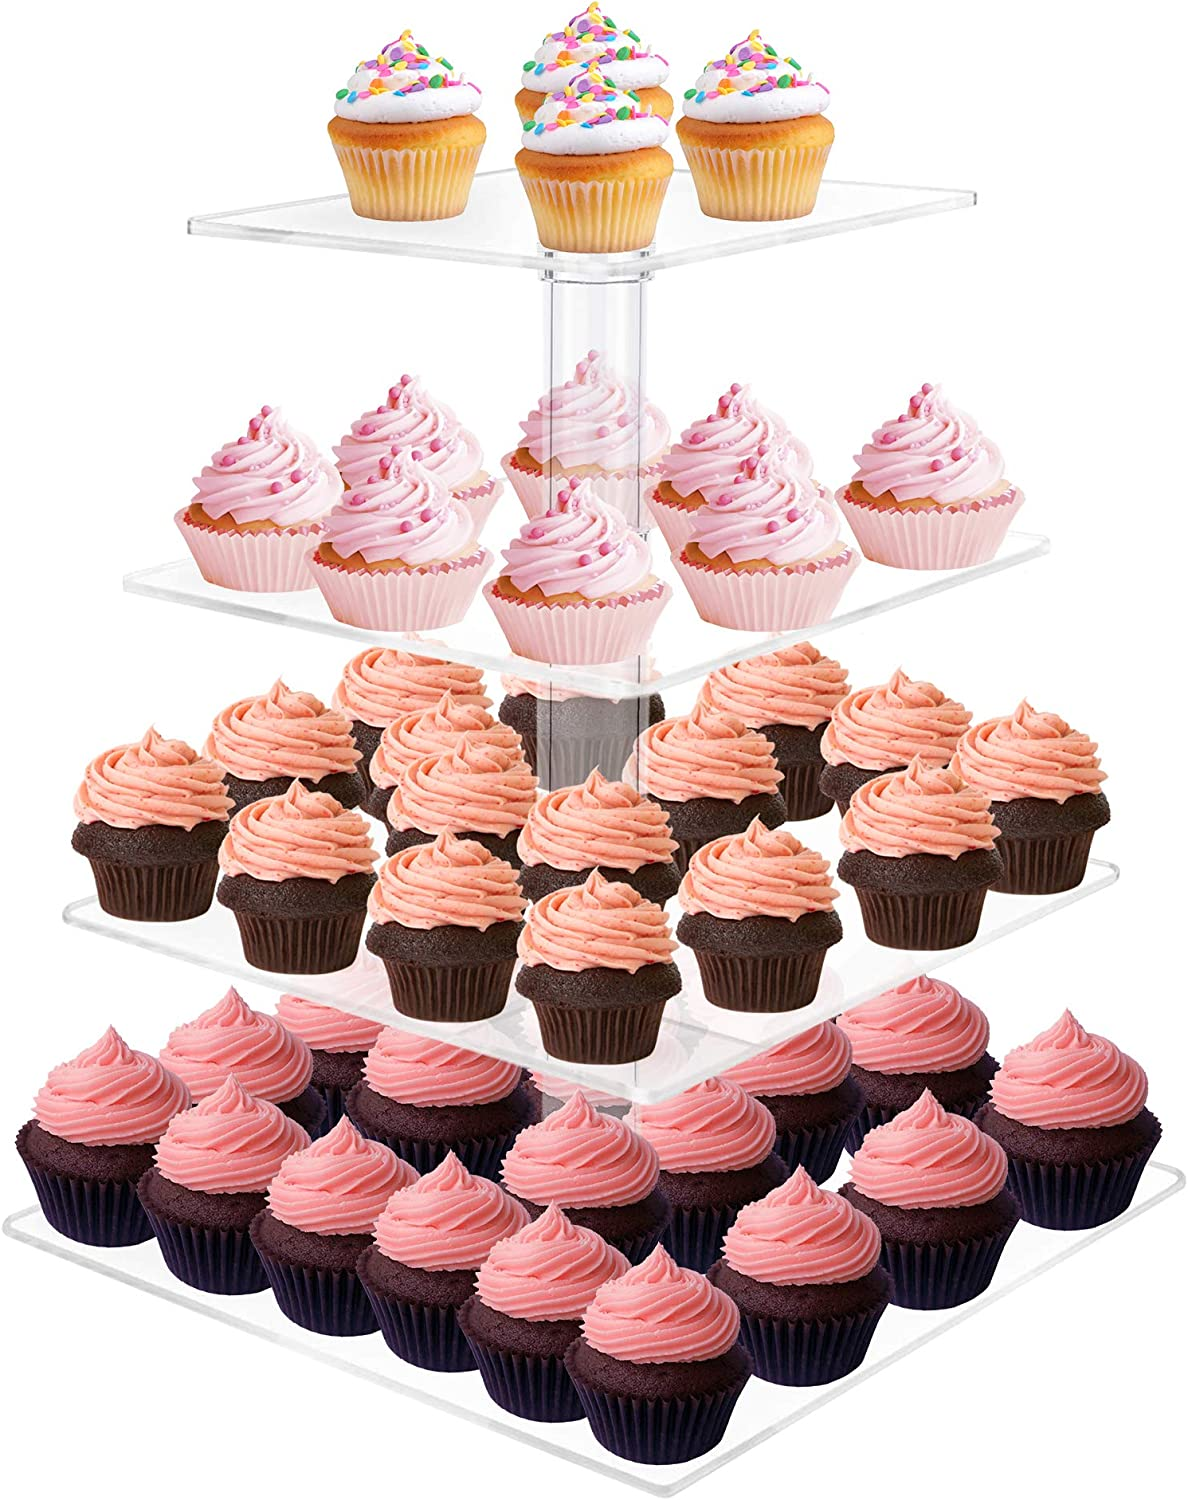 Utenlid 4-Tier Square Stacked Party Cupcake and Dessert Tower - Clear Acrylic Cake Stand